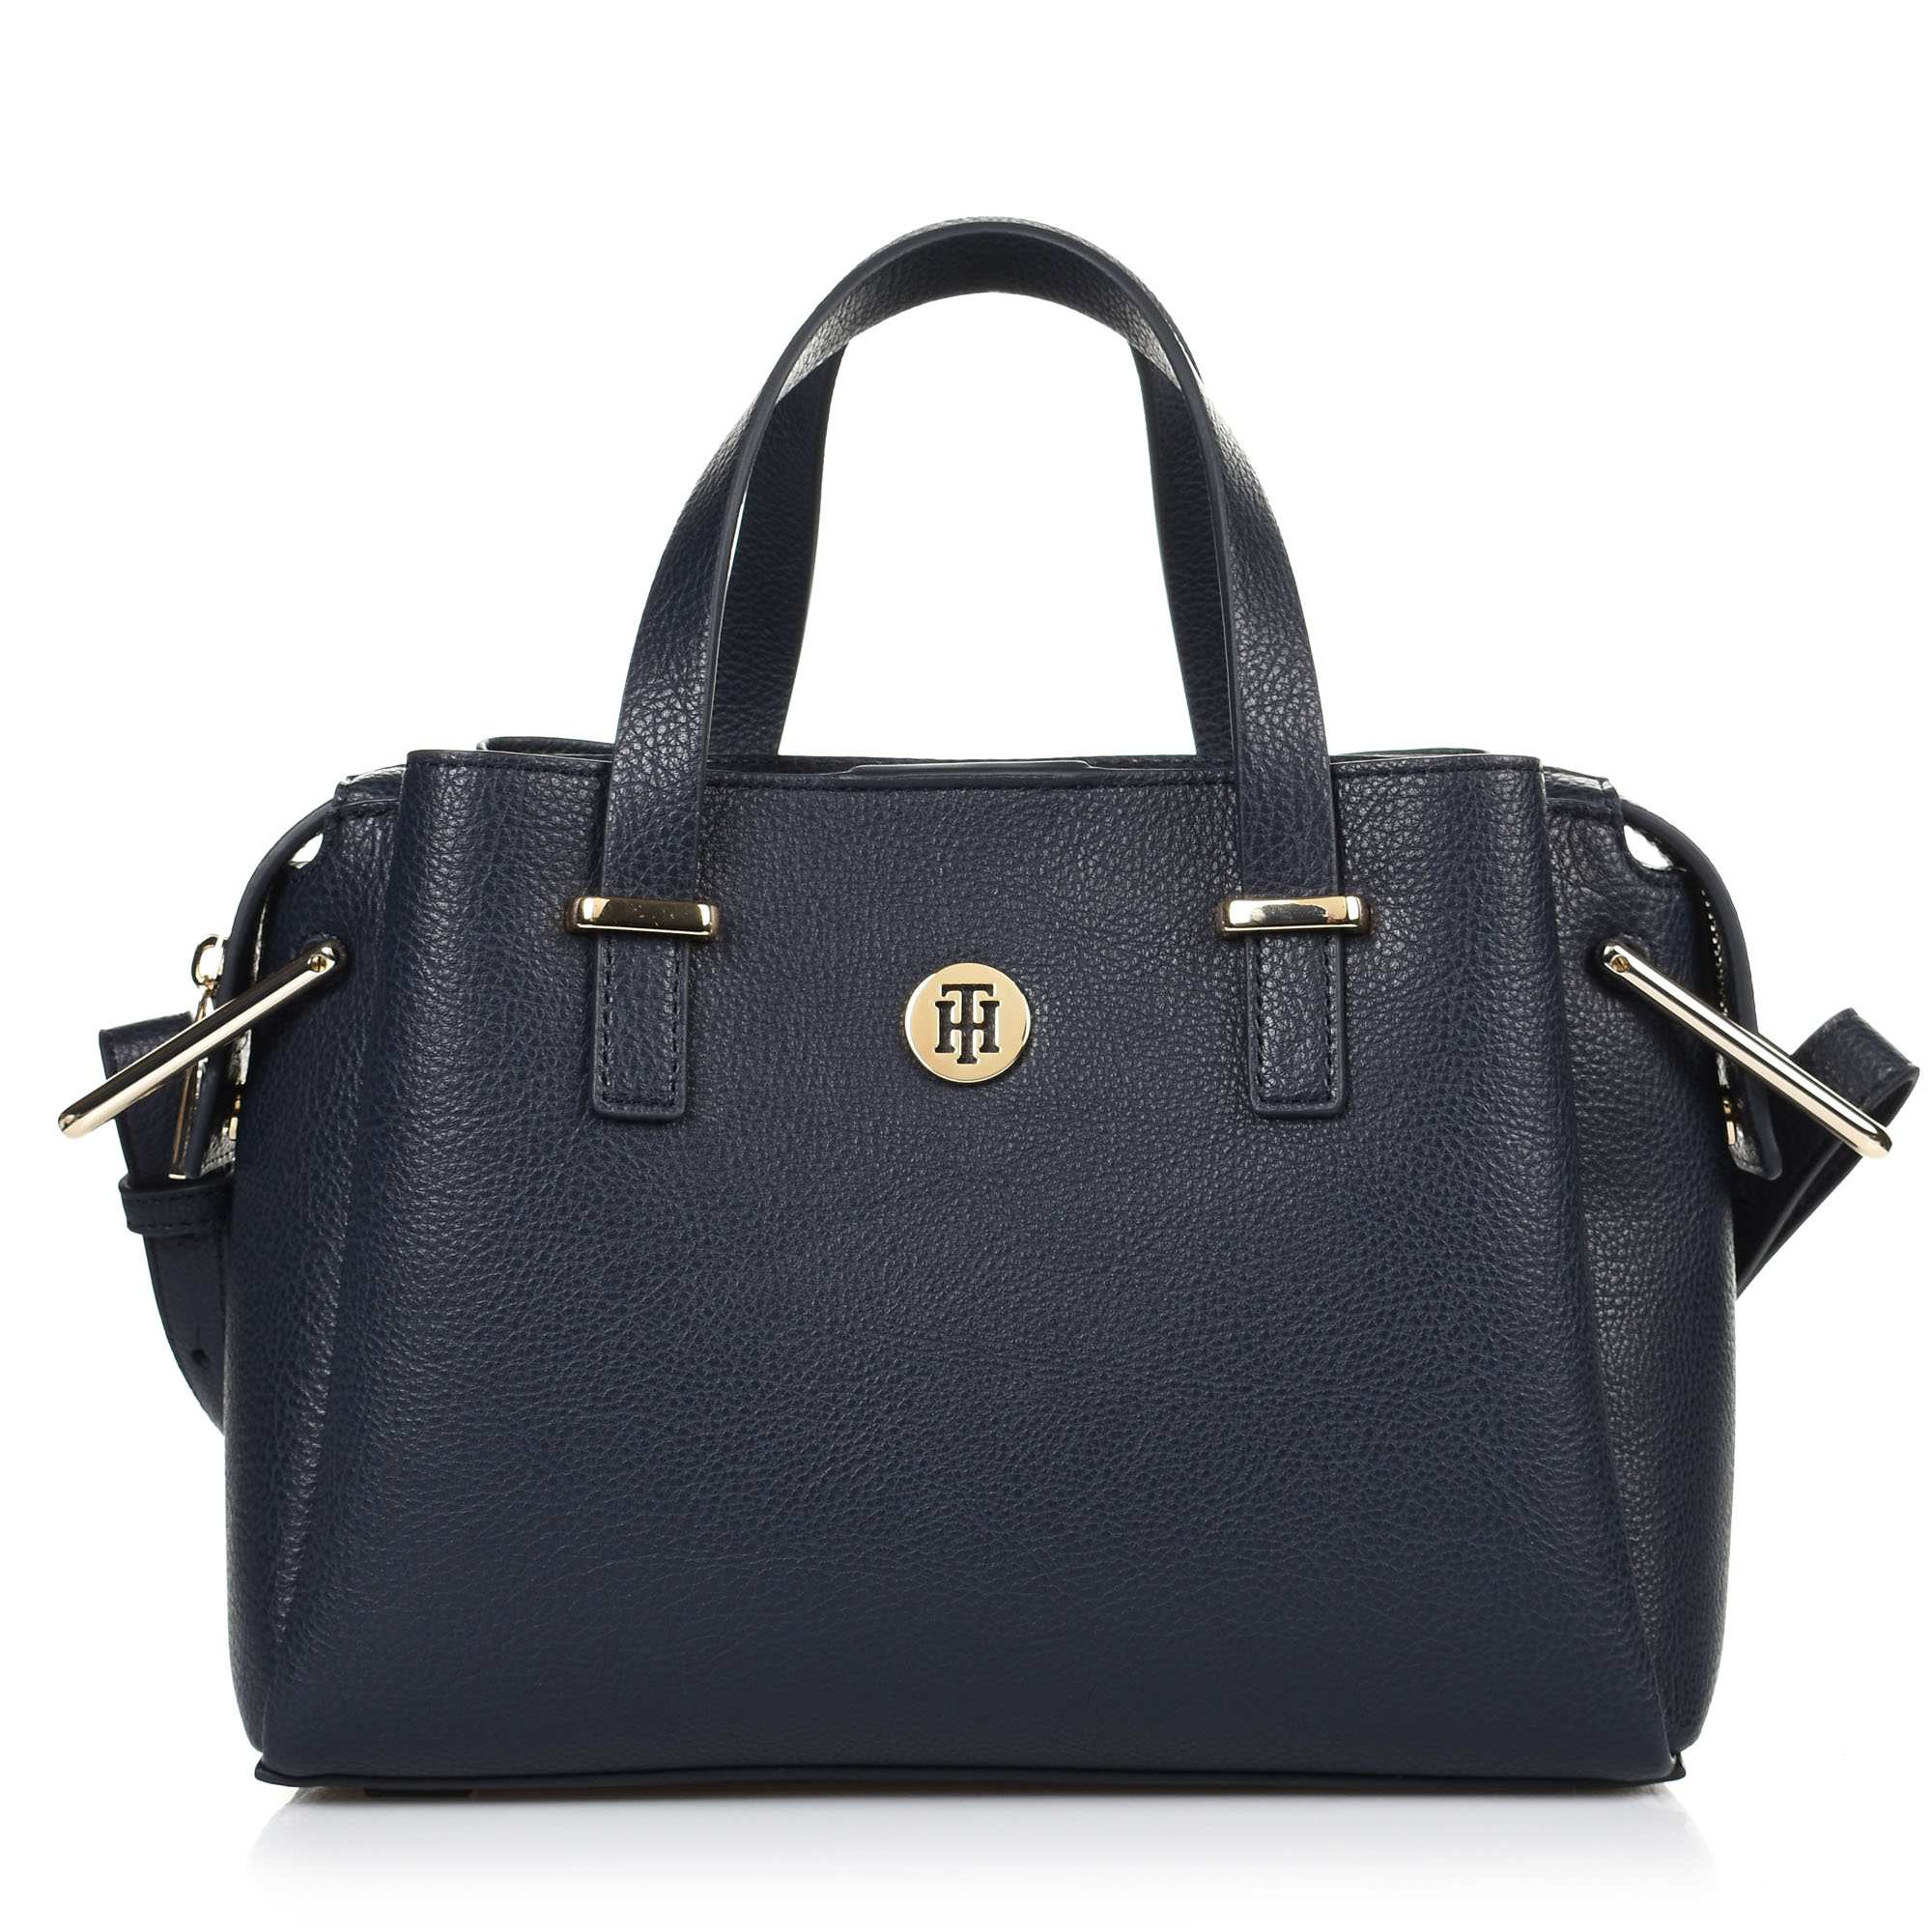 7e14603284 Brand Bags Τote Τσάντα Tommy Hilfiger AW0AW06816 Core Med Satchel